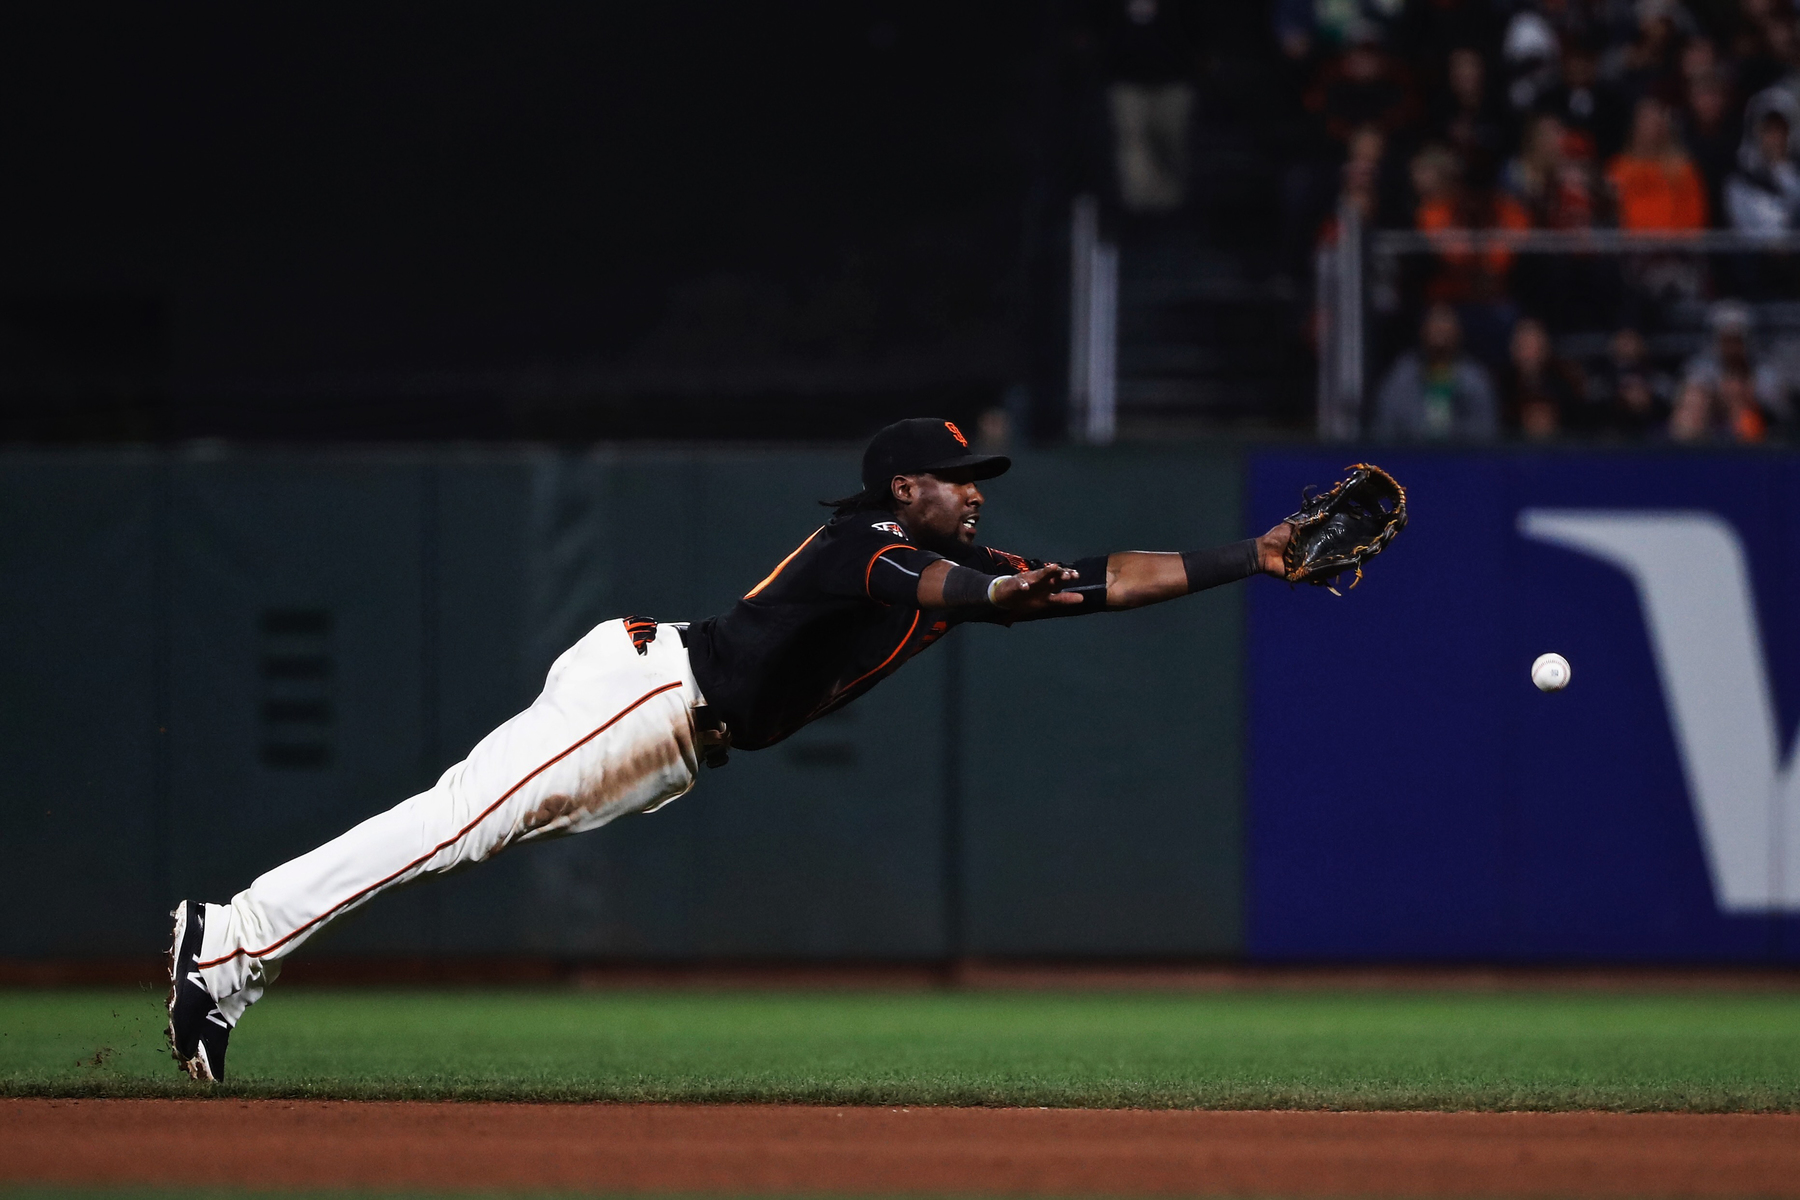 Alen Hanson #19 of the San Francisco Giants couldn't catch a ball hit by Josh Phegley #19 of the Oakland Athletics during the seventh inning of their MLB baseball game at AT&T Park on July 14, 2018 in San Francisco, California